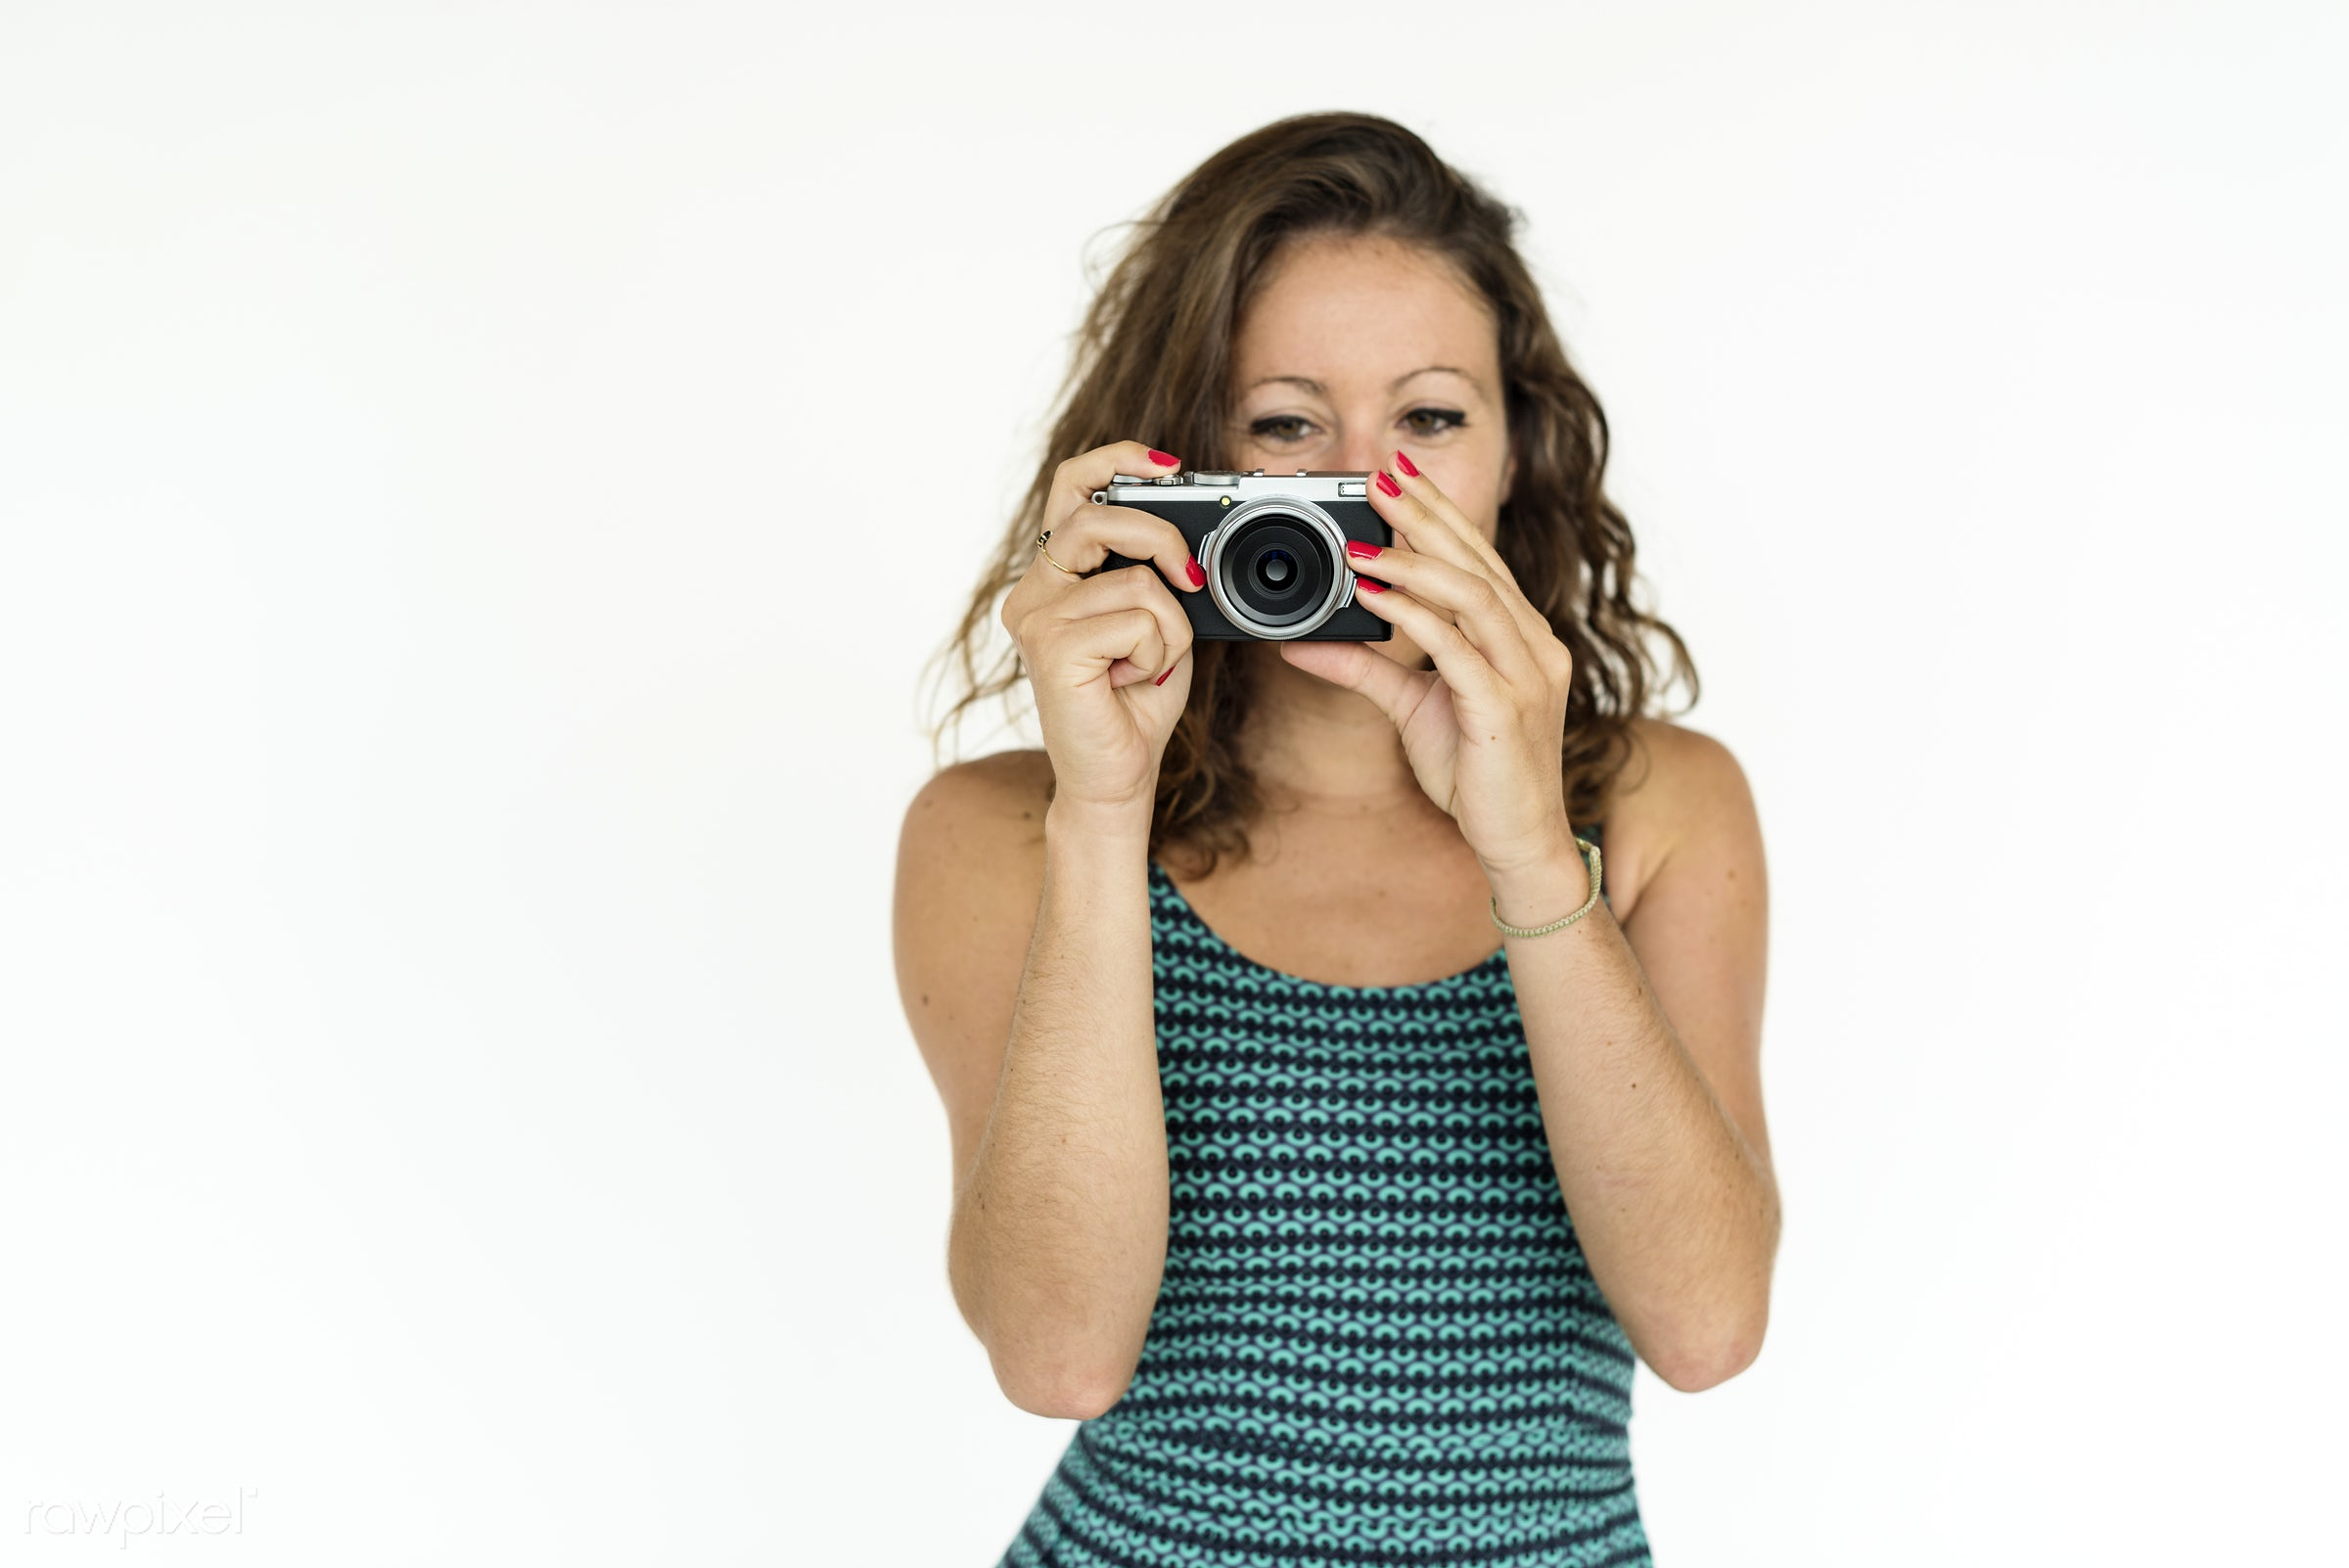 studio, expression, person, holding, people, caucasian, woman, lifestyle, cheerful, smiling, isolated, white, hobby,...